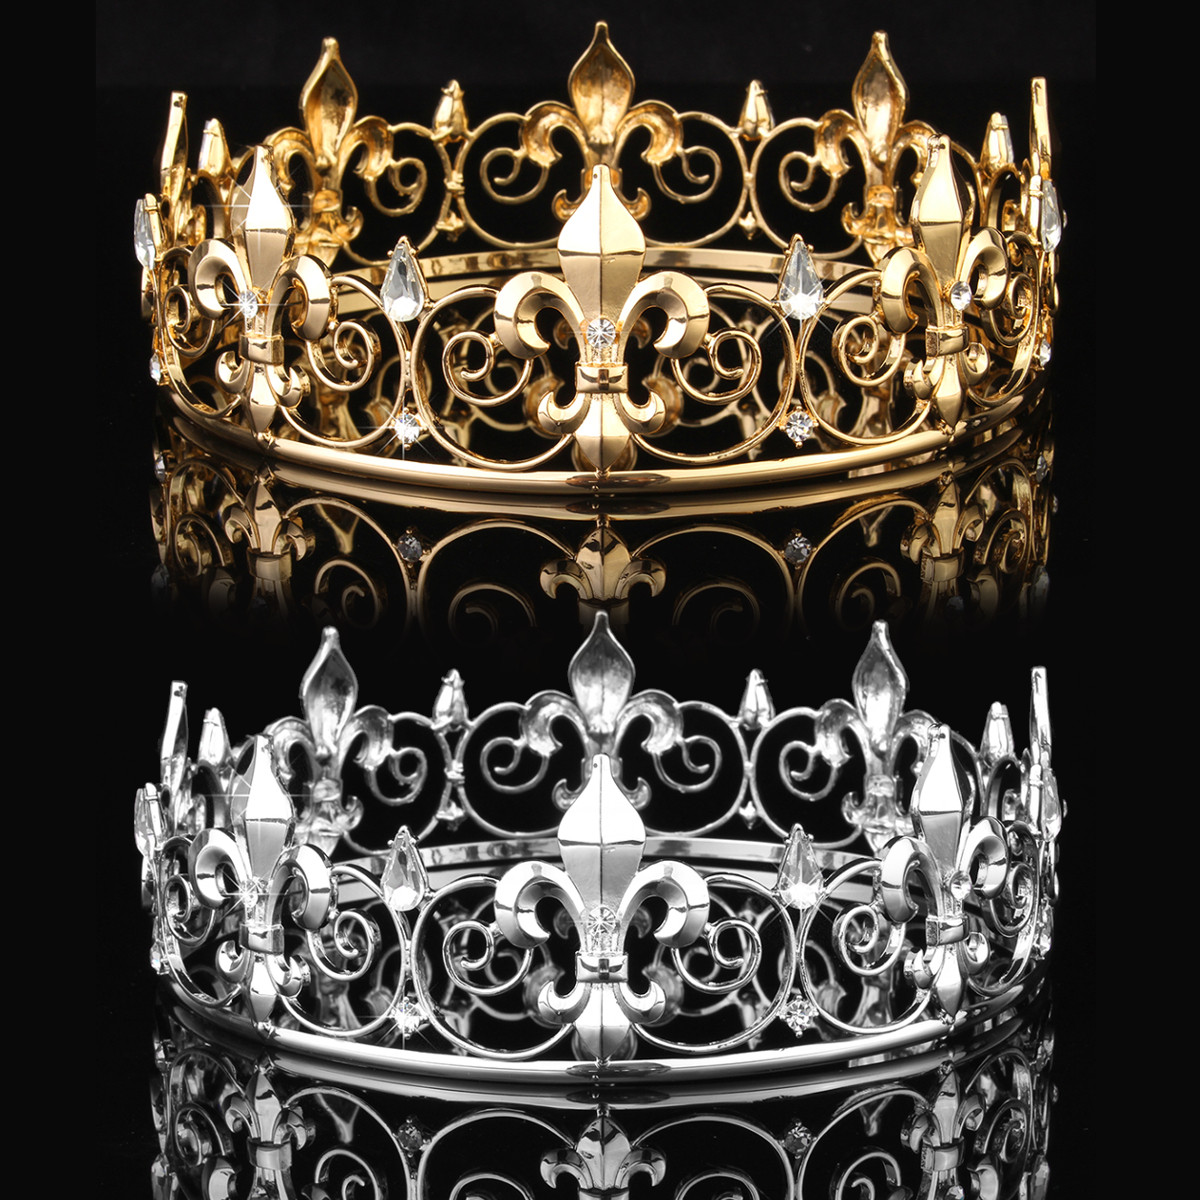 Meigar Full Circle Men's Crown Imperial Medieval Tiara Fleur De Lis Gold King Crown Pageant Party